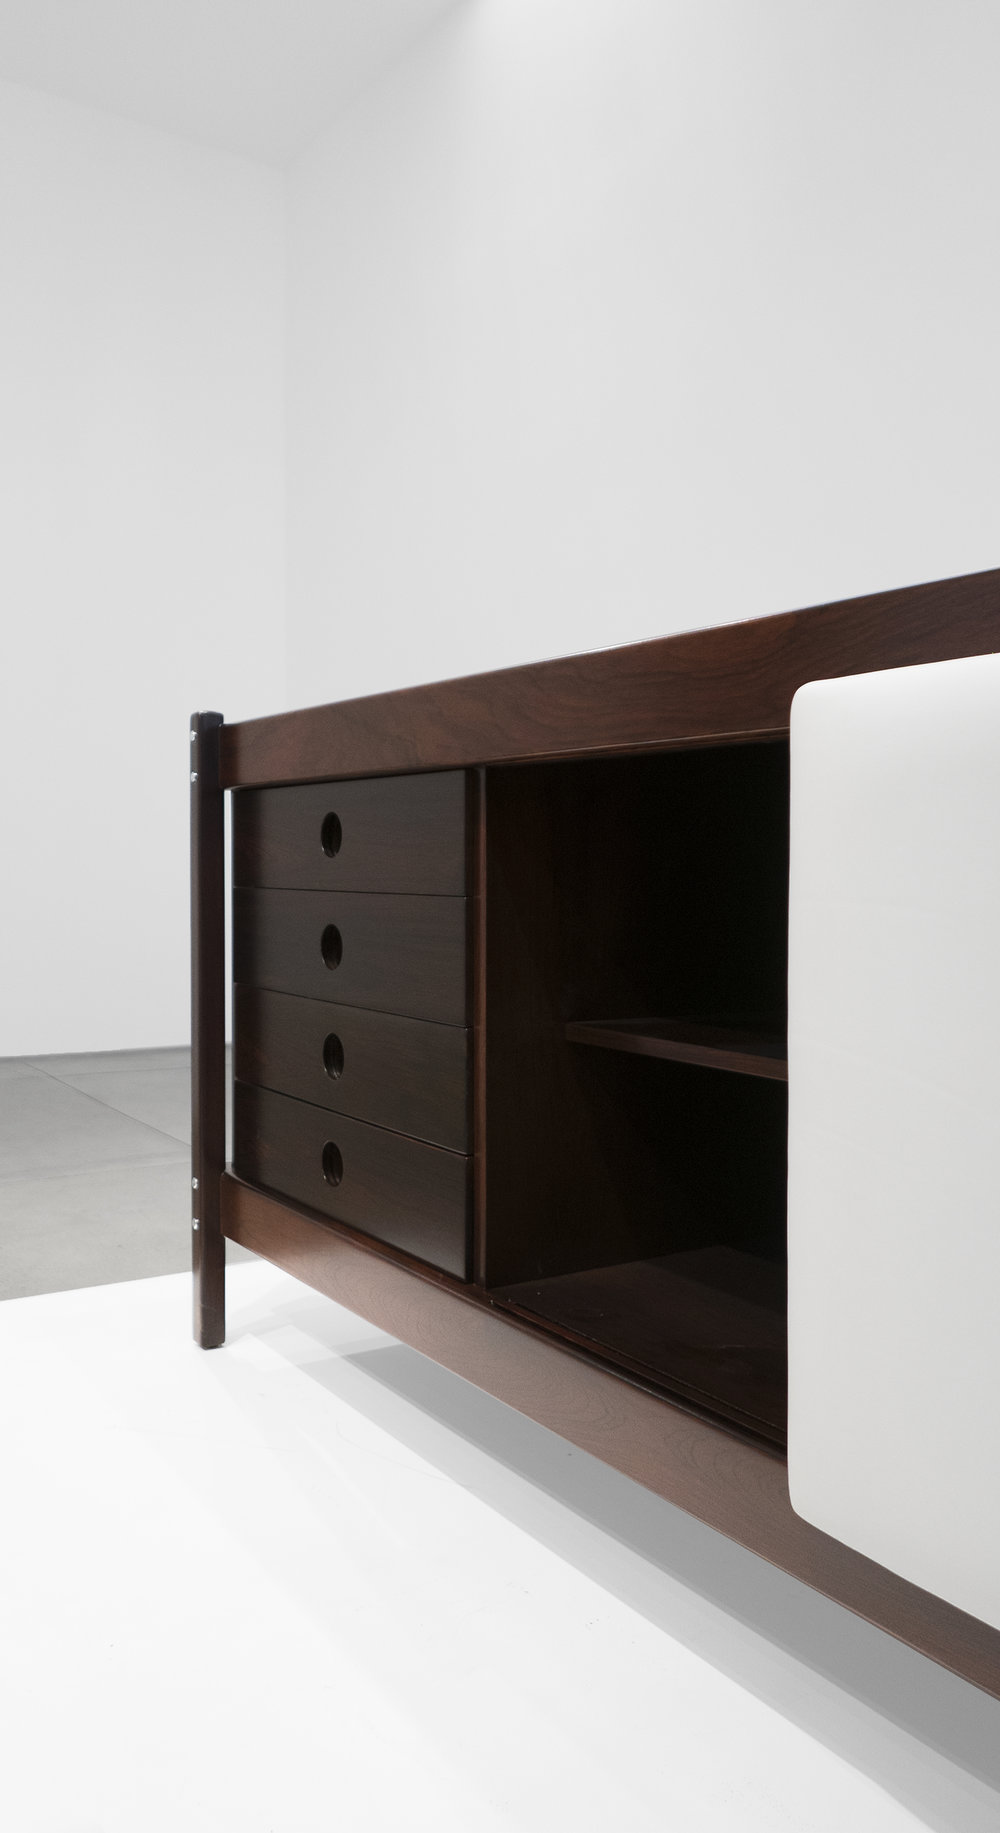 Sergio Rodrigues, Rosewood Credenza, c. 1965, Rosewood, Leather, 30.5 H x 79.5 W x 19.75 D inches_6.jpg